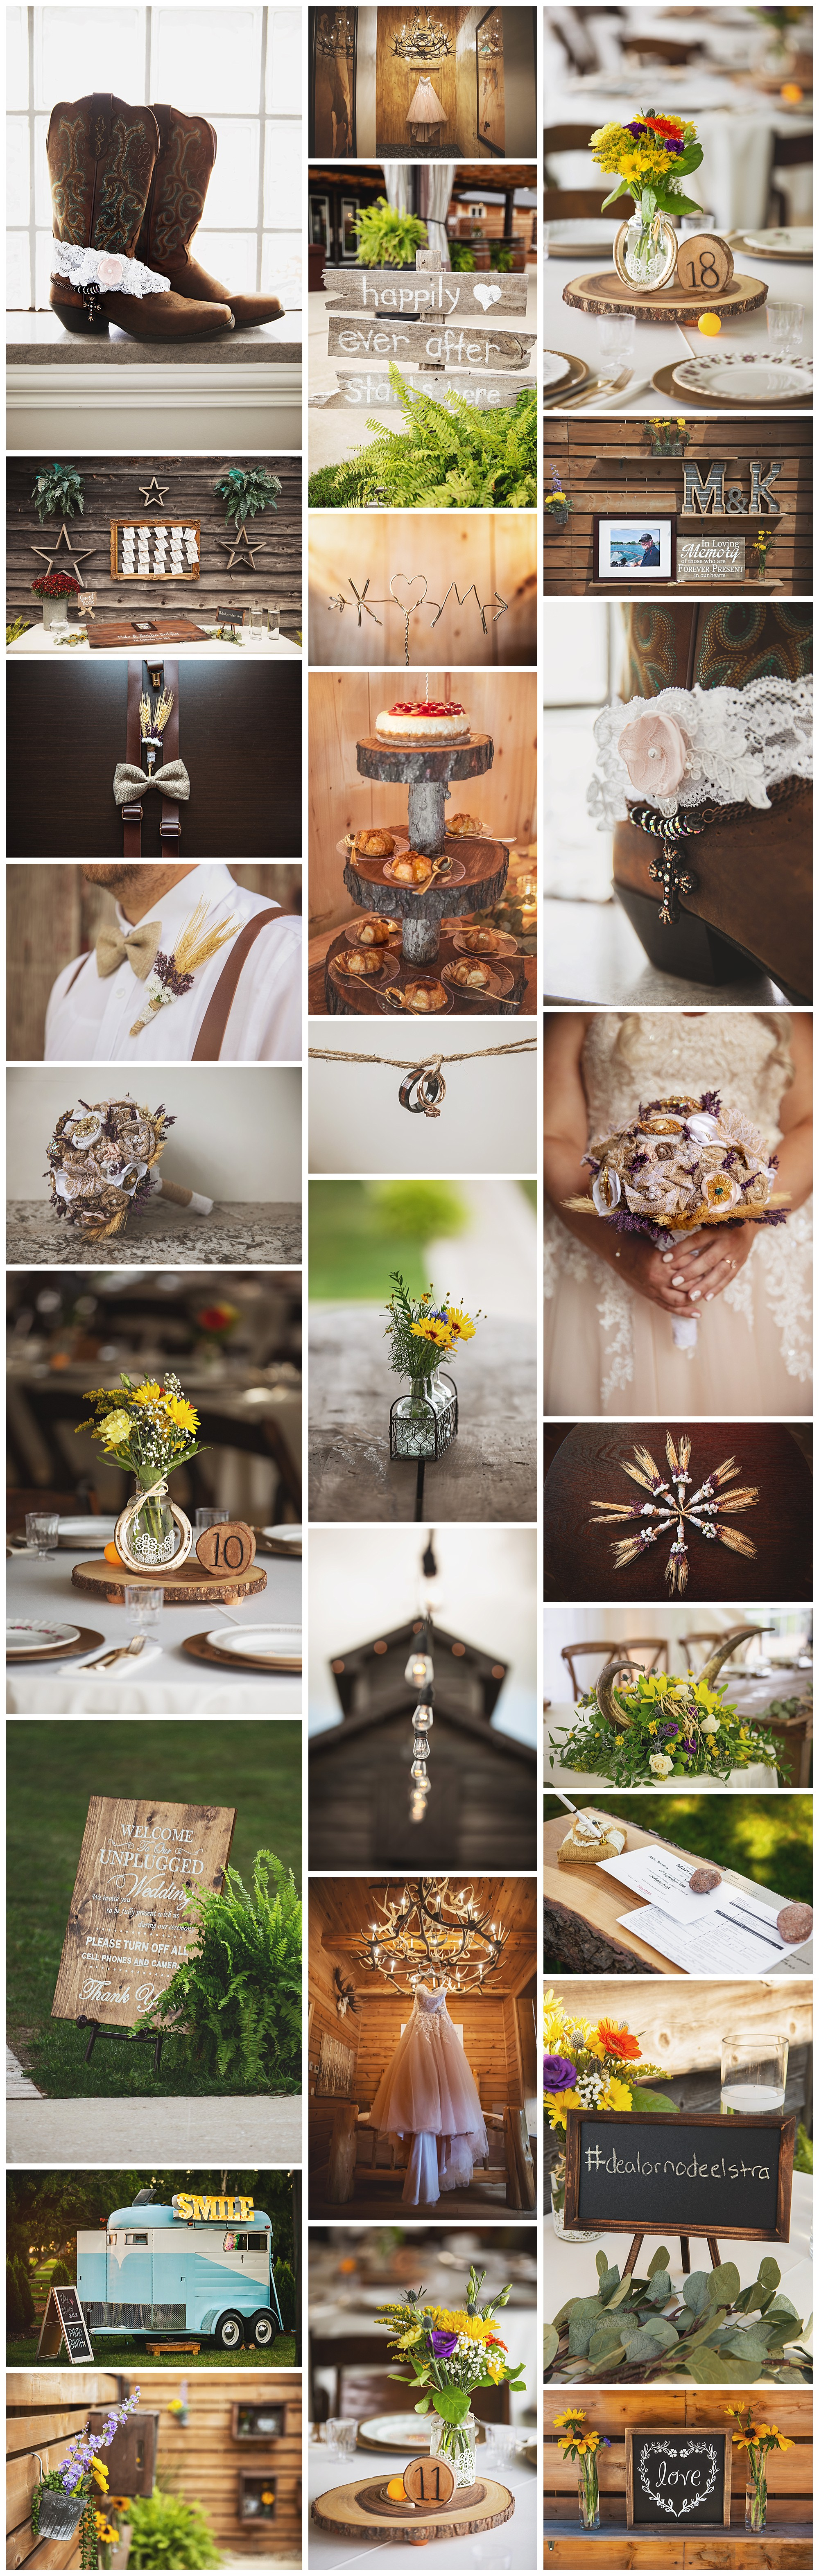 The Rustic Ranch Event Venue, Chatham, Ontario wedding photos by VanDaele & Russell